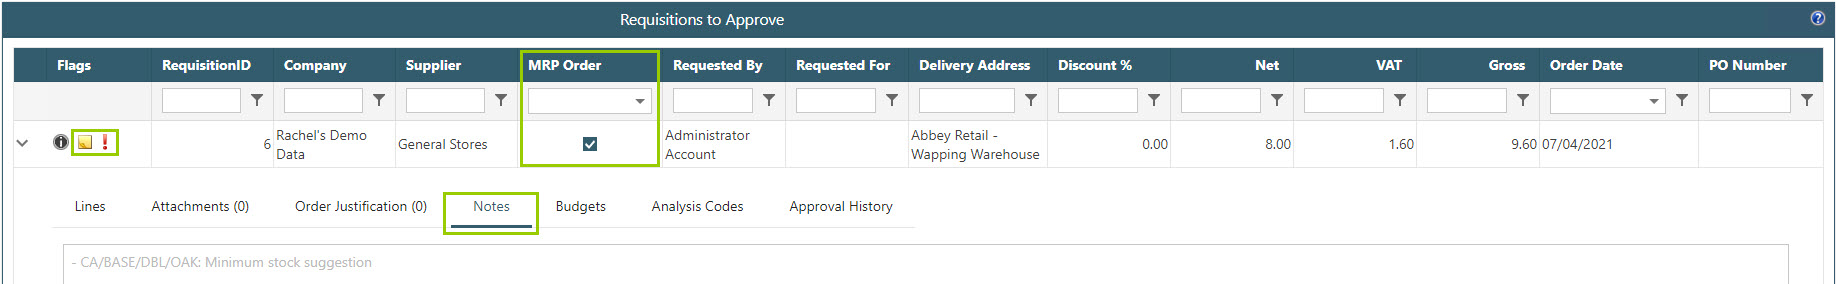 Sicon WAP Purchase Requisitions Help and User Guide - Requisition HUG Section 19.5 Image 3